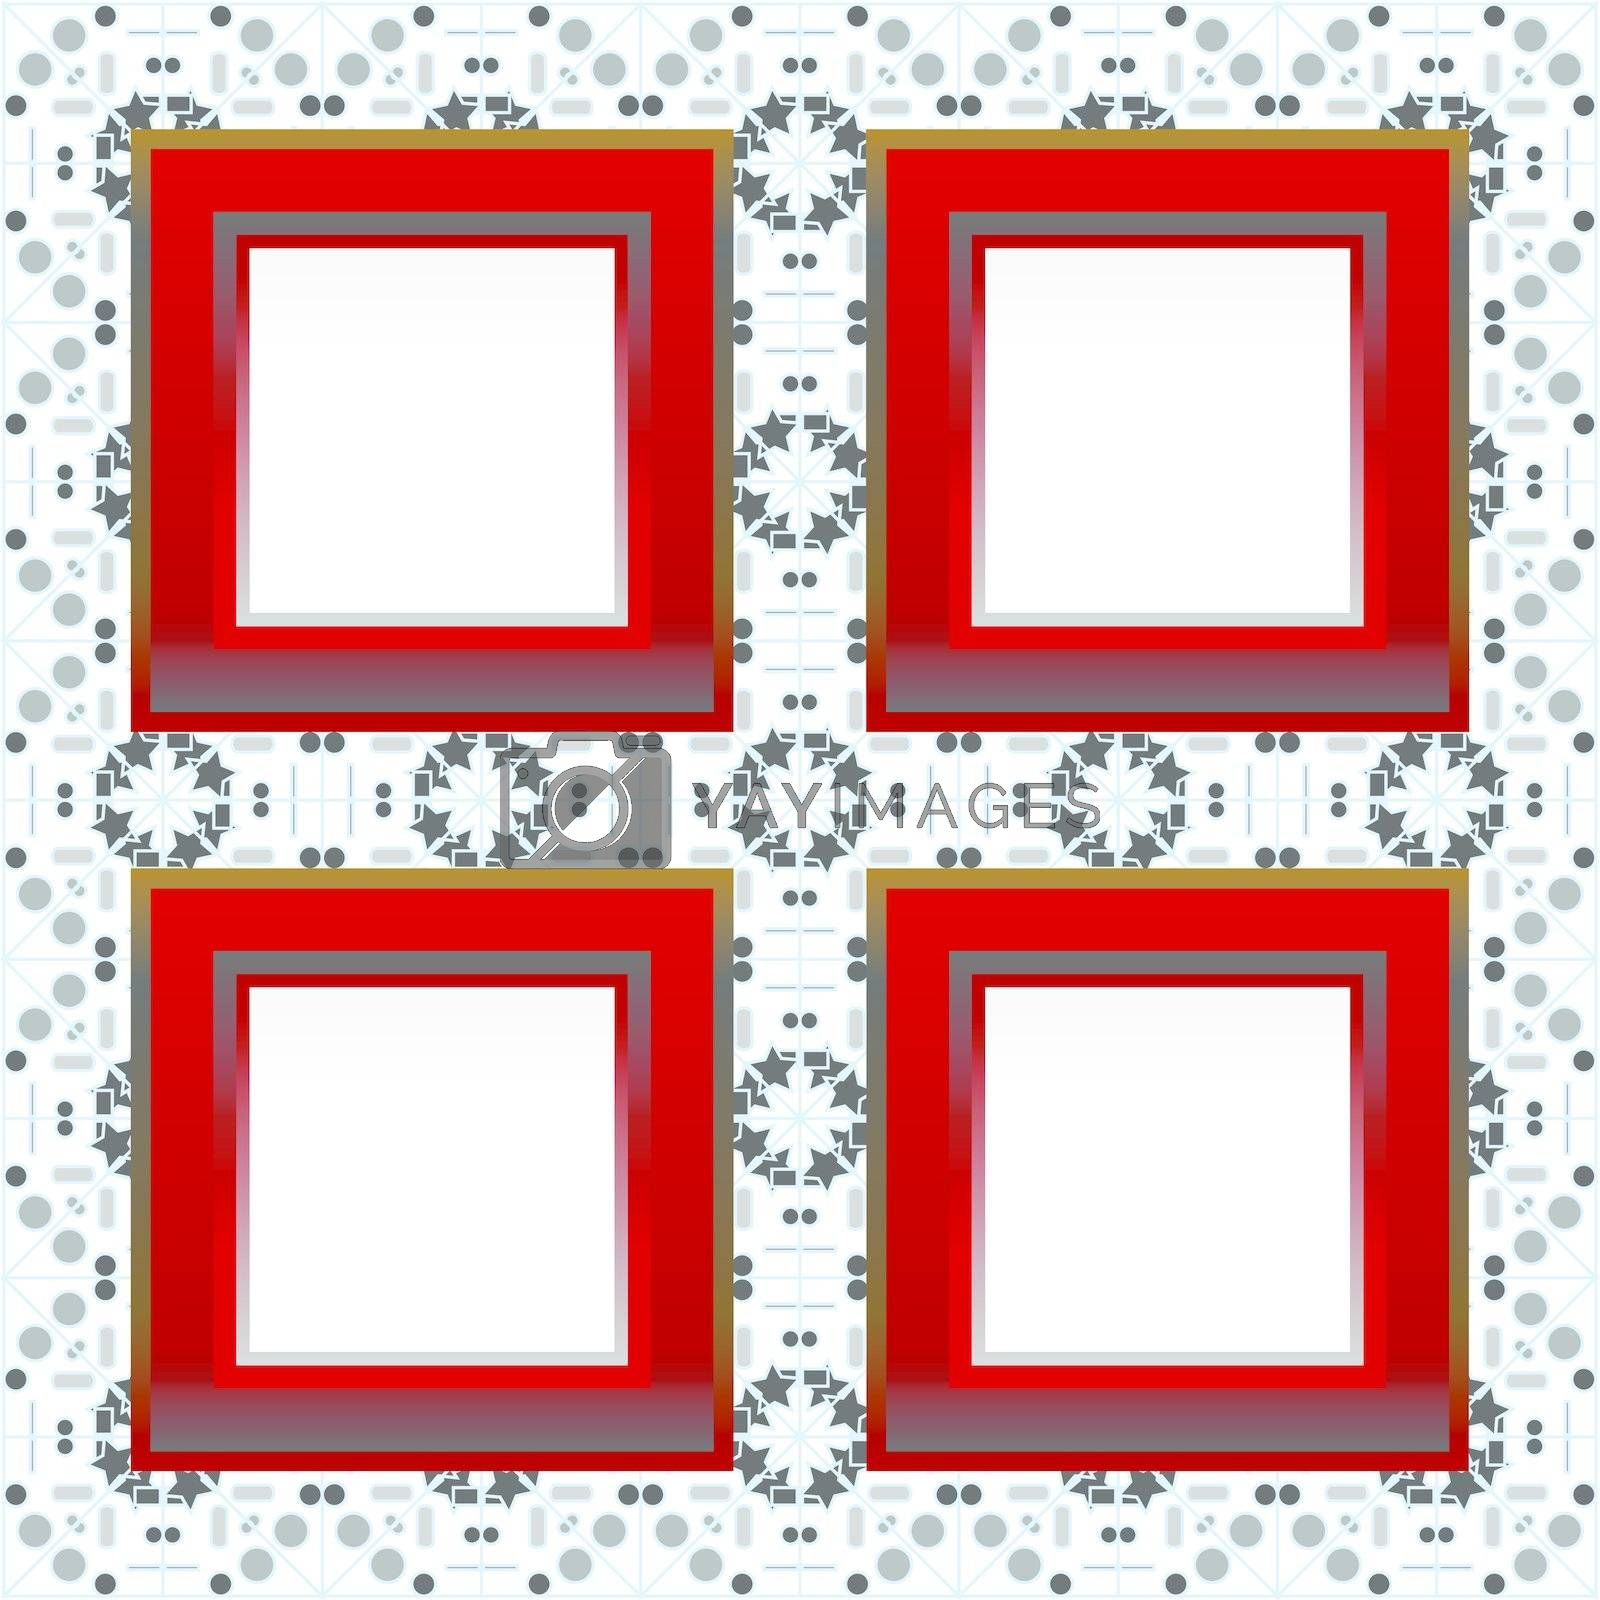 red vintage photo frames on grungy floral background. vector